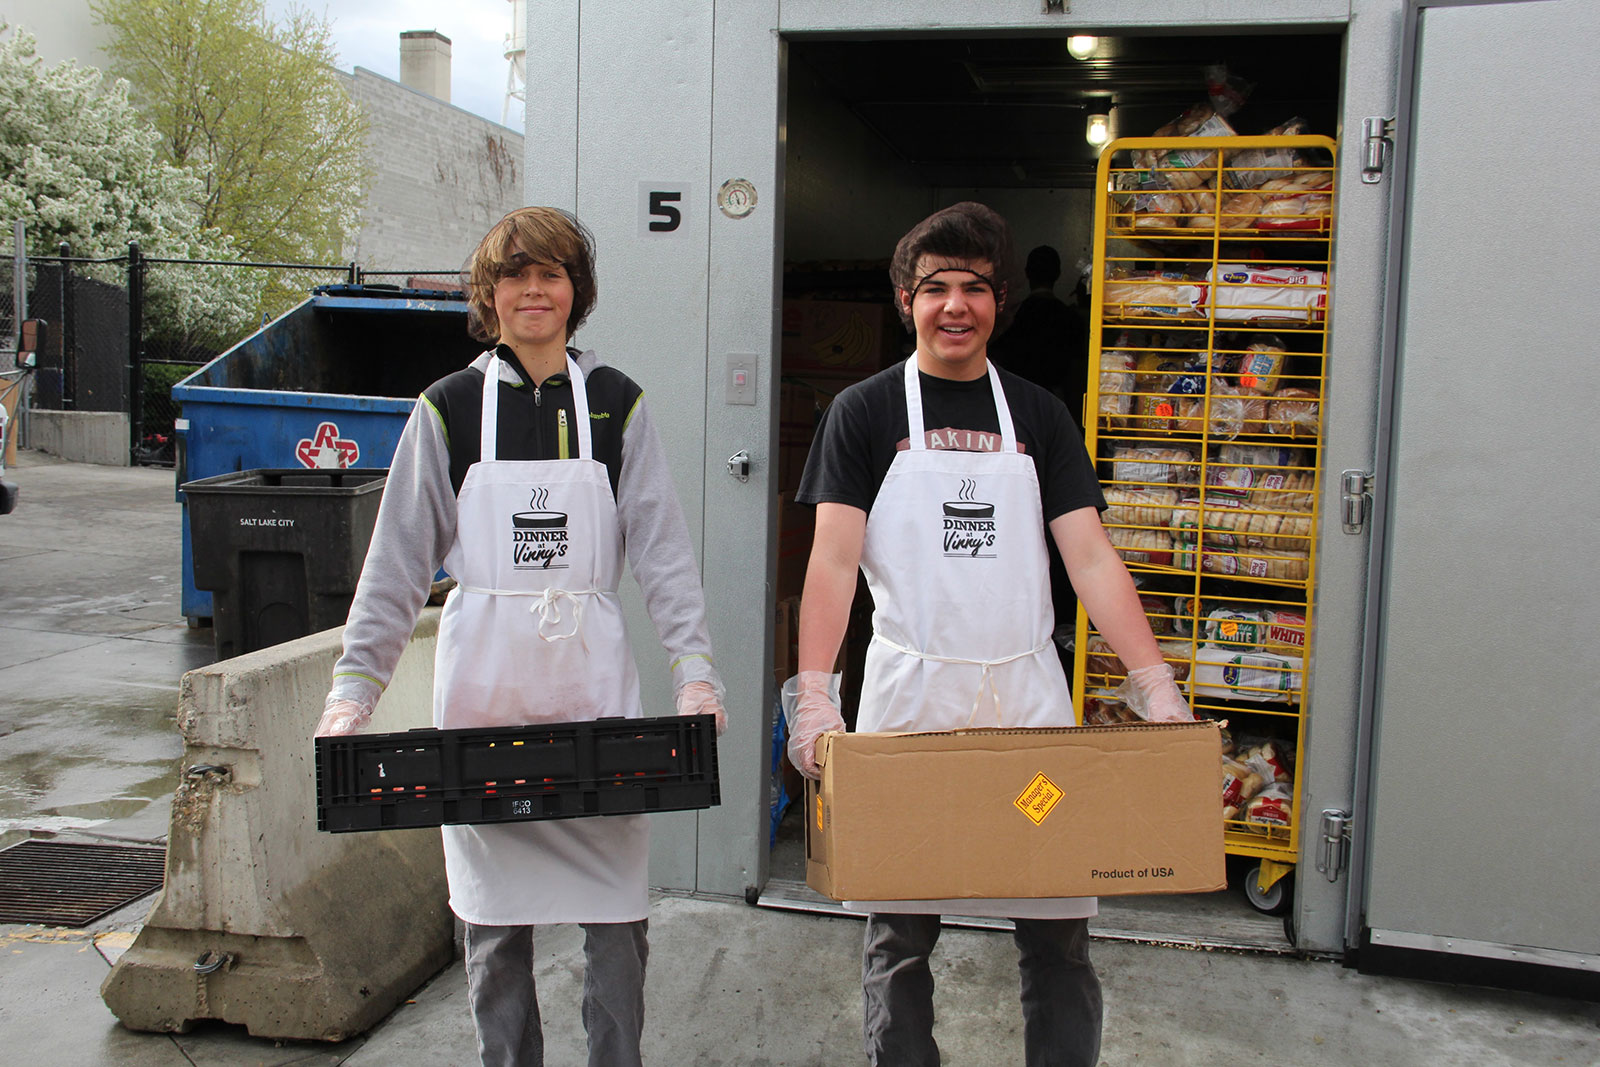 Two students in aprons carrying boxes